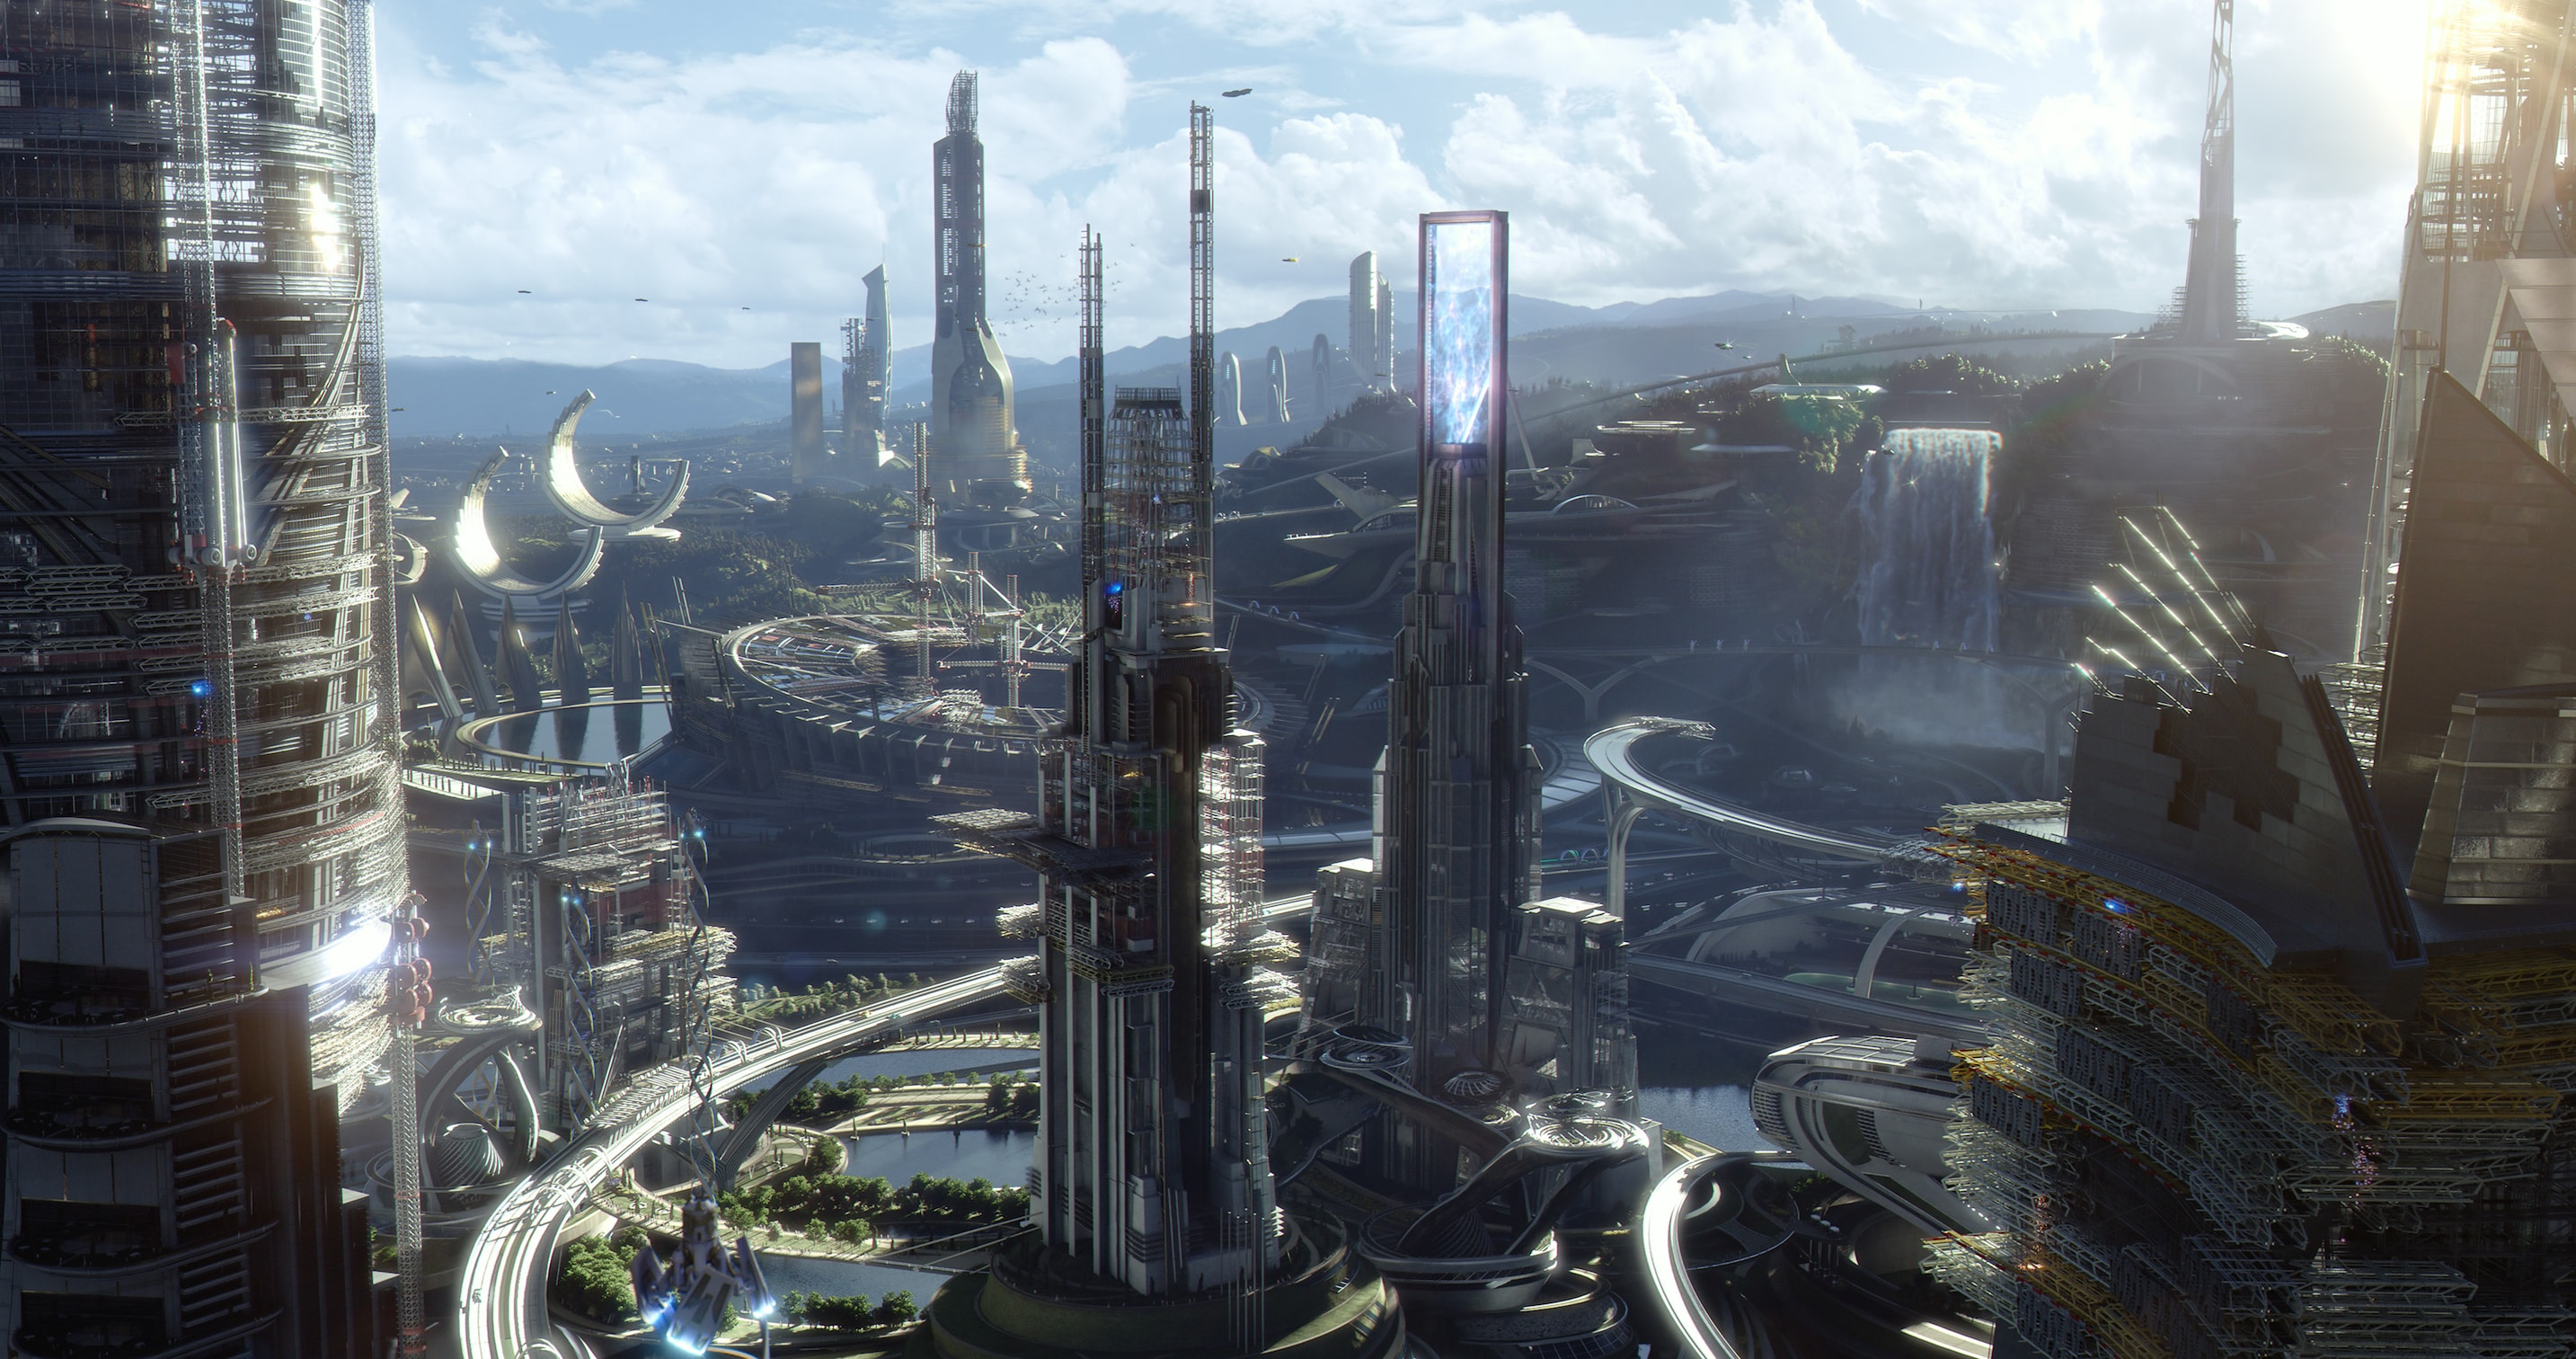 """Image of Tomorrowland from the movie """"Tomorrowland"""""""